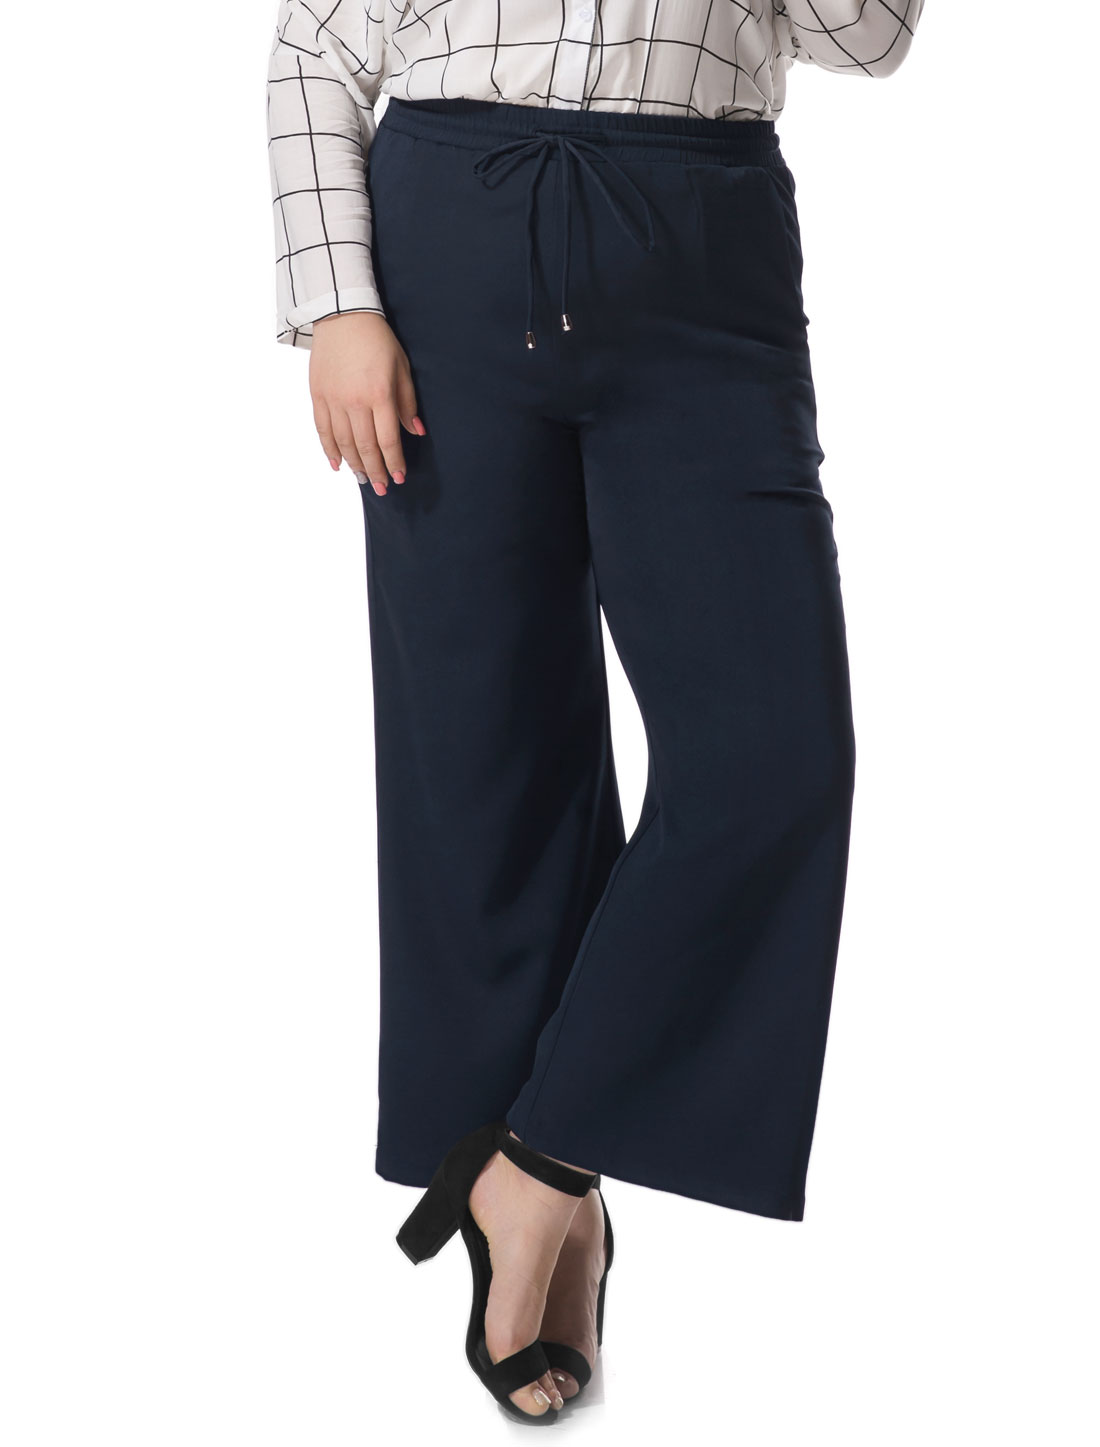 Women Plus Size Wide Leg Elastic Drawstring Pants Blue 2X